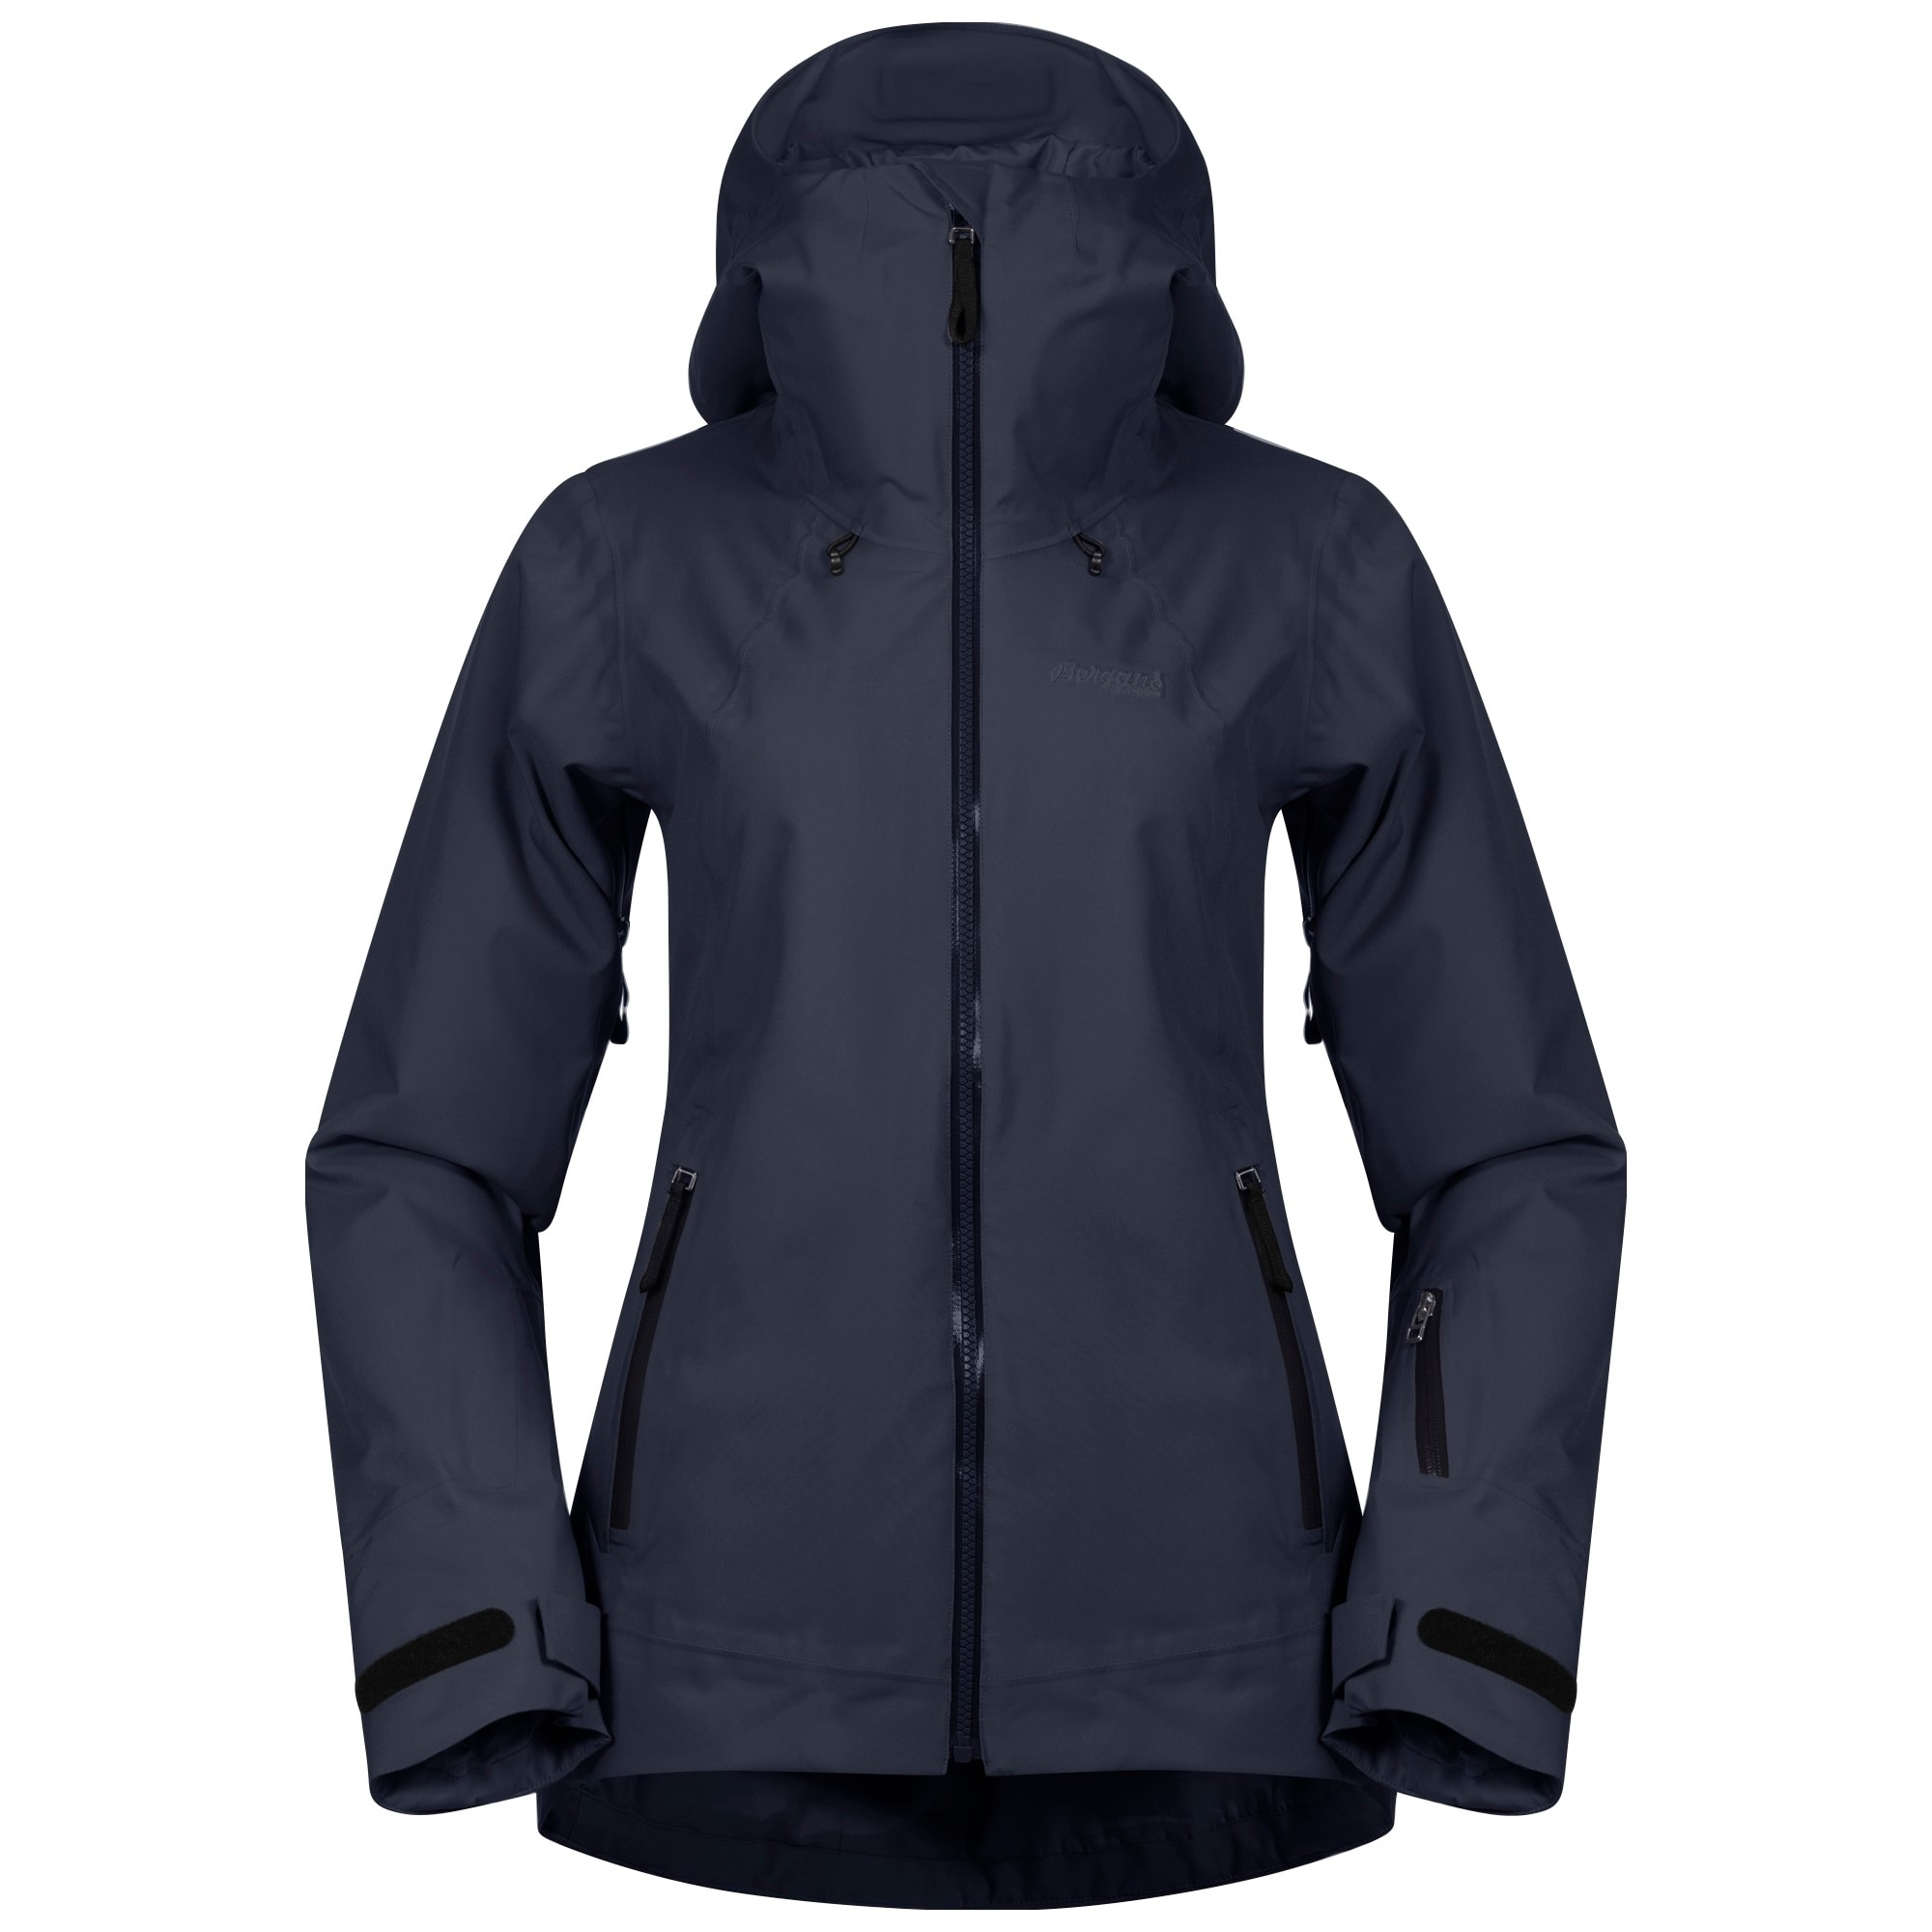 Stranda Insulated Hybrid Women's Jacket